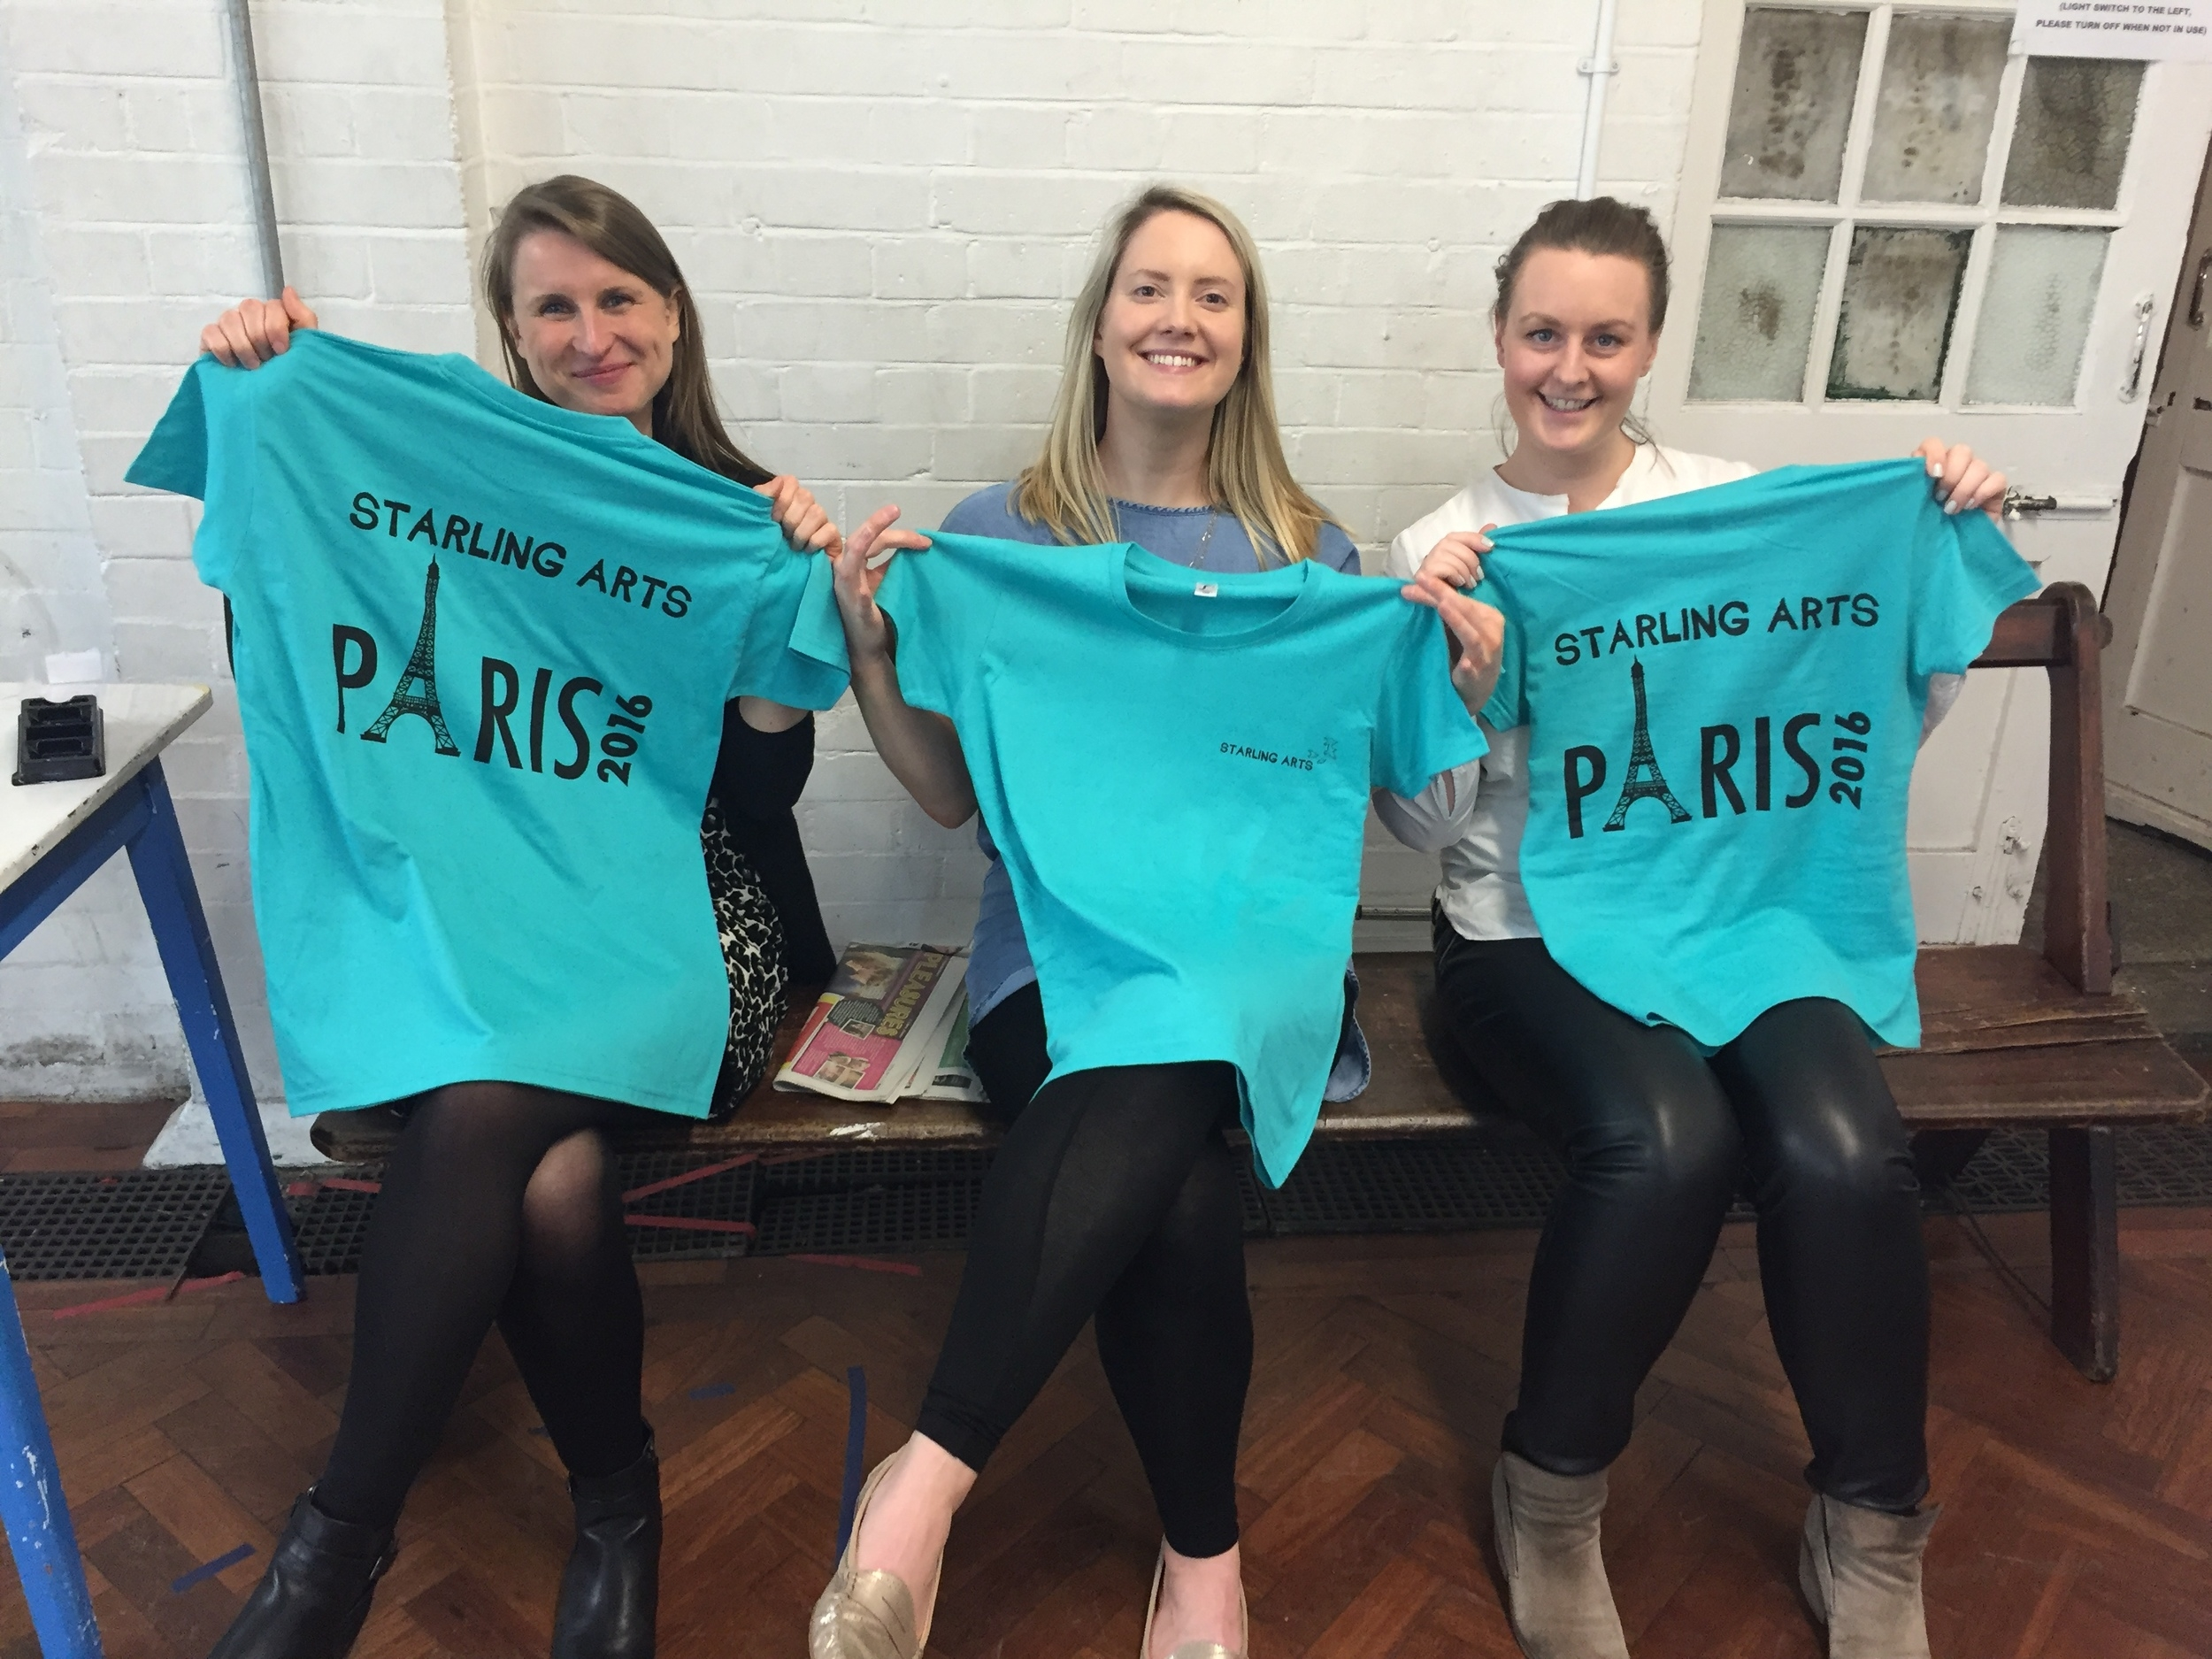 Some of our members show off their special tour t-shirts at rehearsal